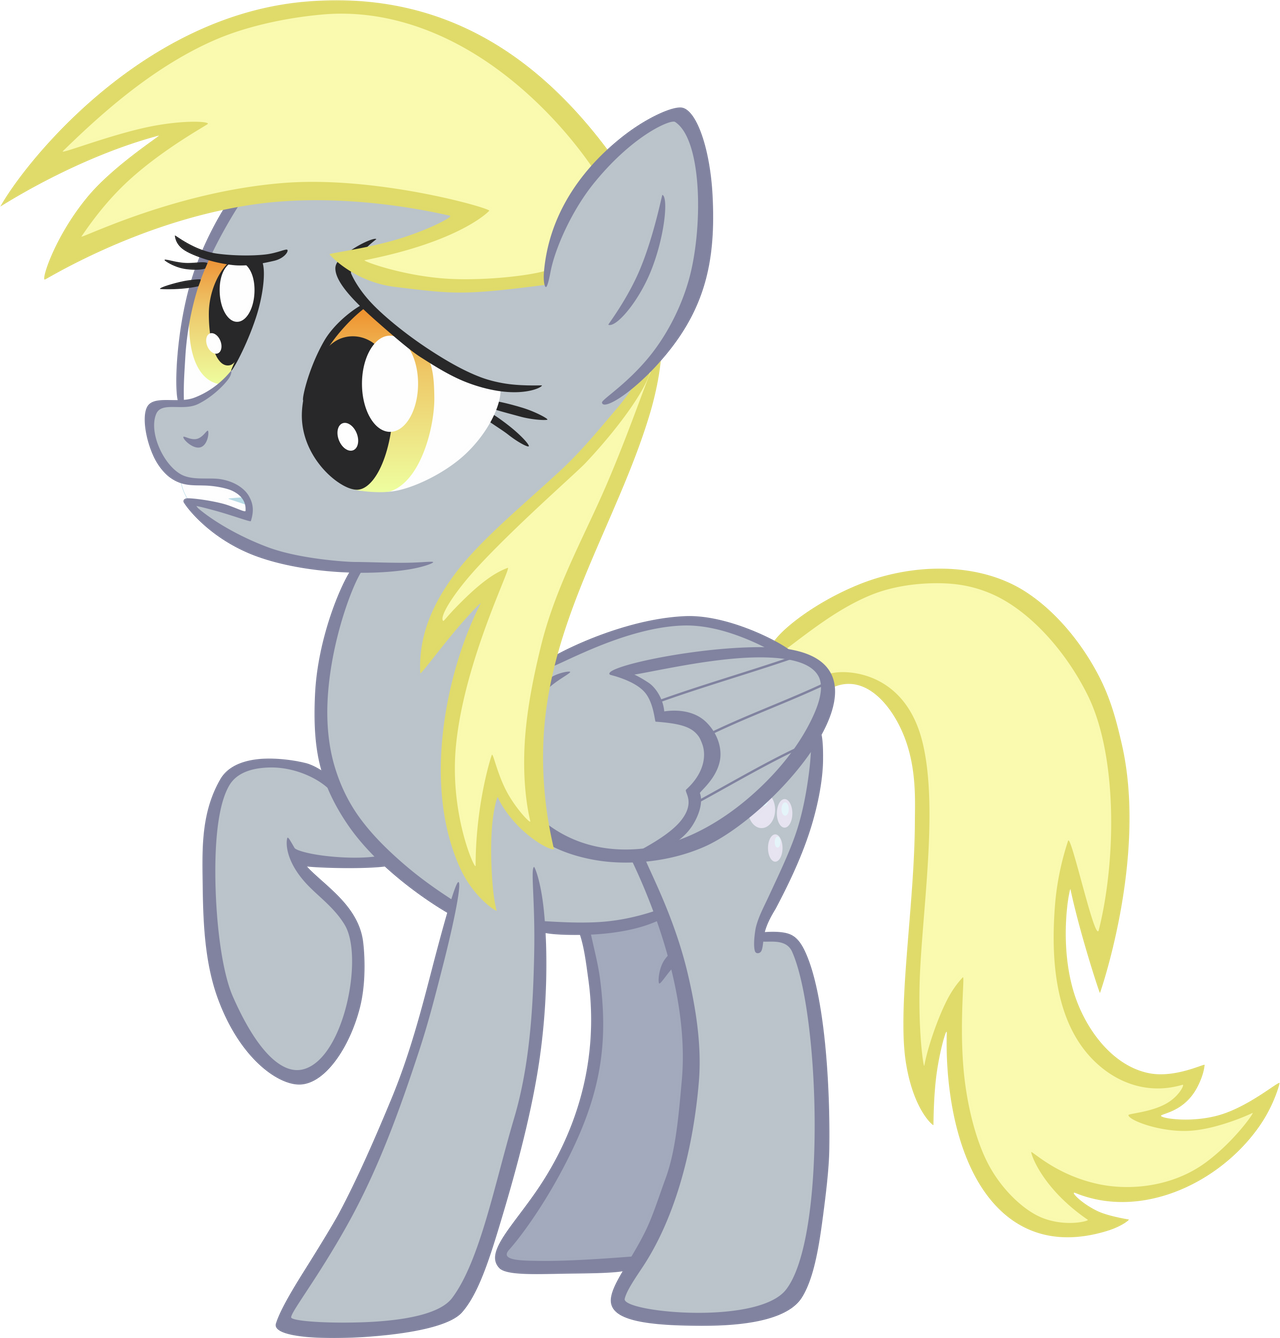 Derpy Hooves by greseres on DeviantArt